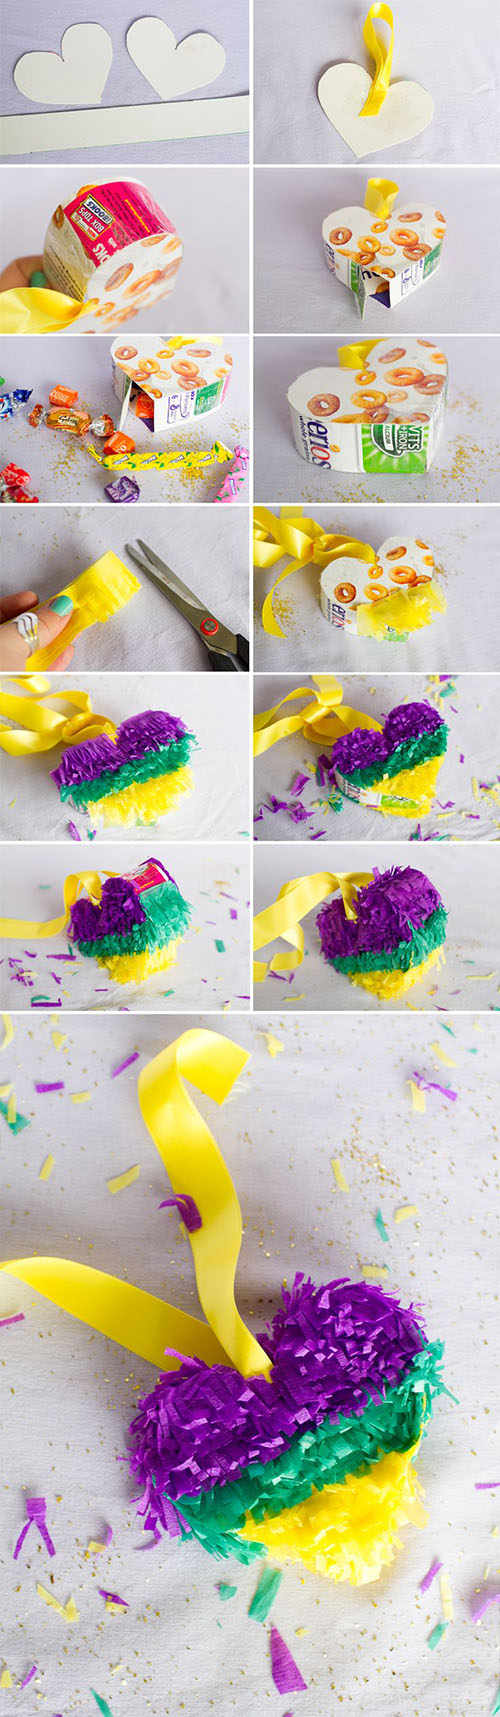 17 DIY How To Make Mini Heart Piñatas ea556ba